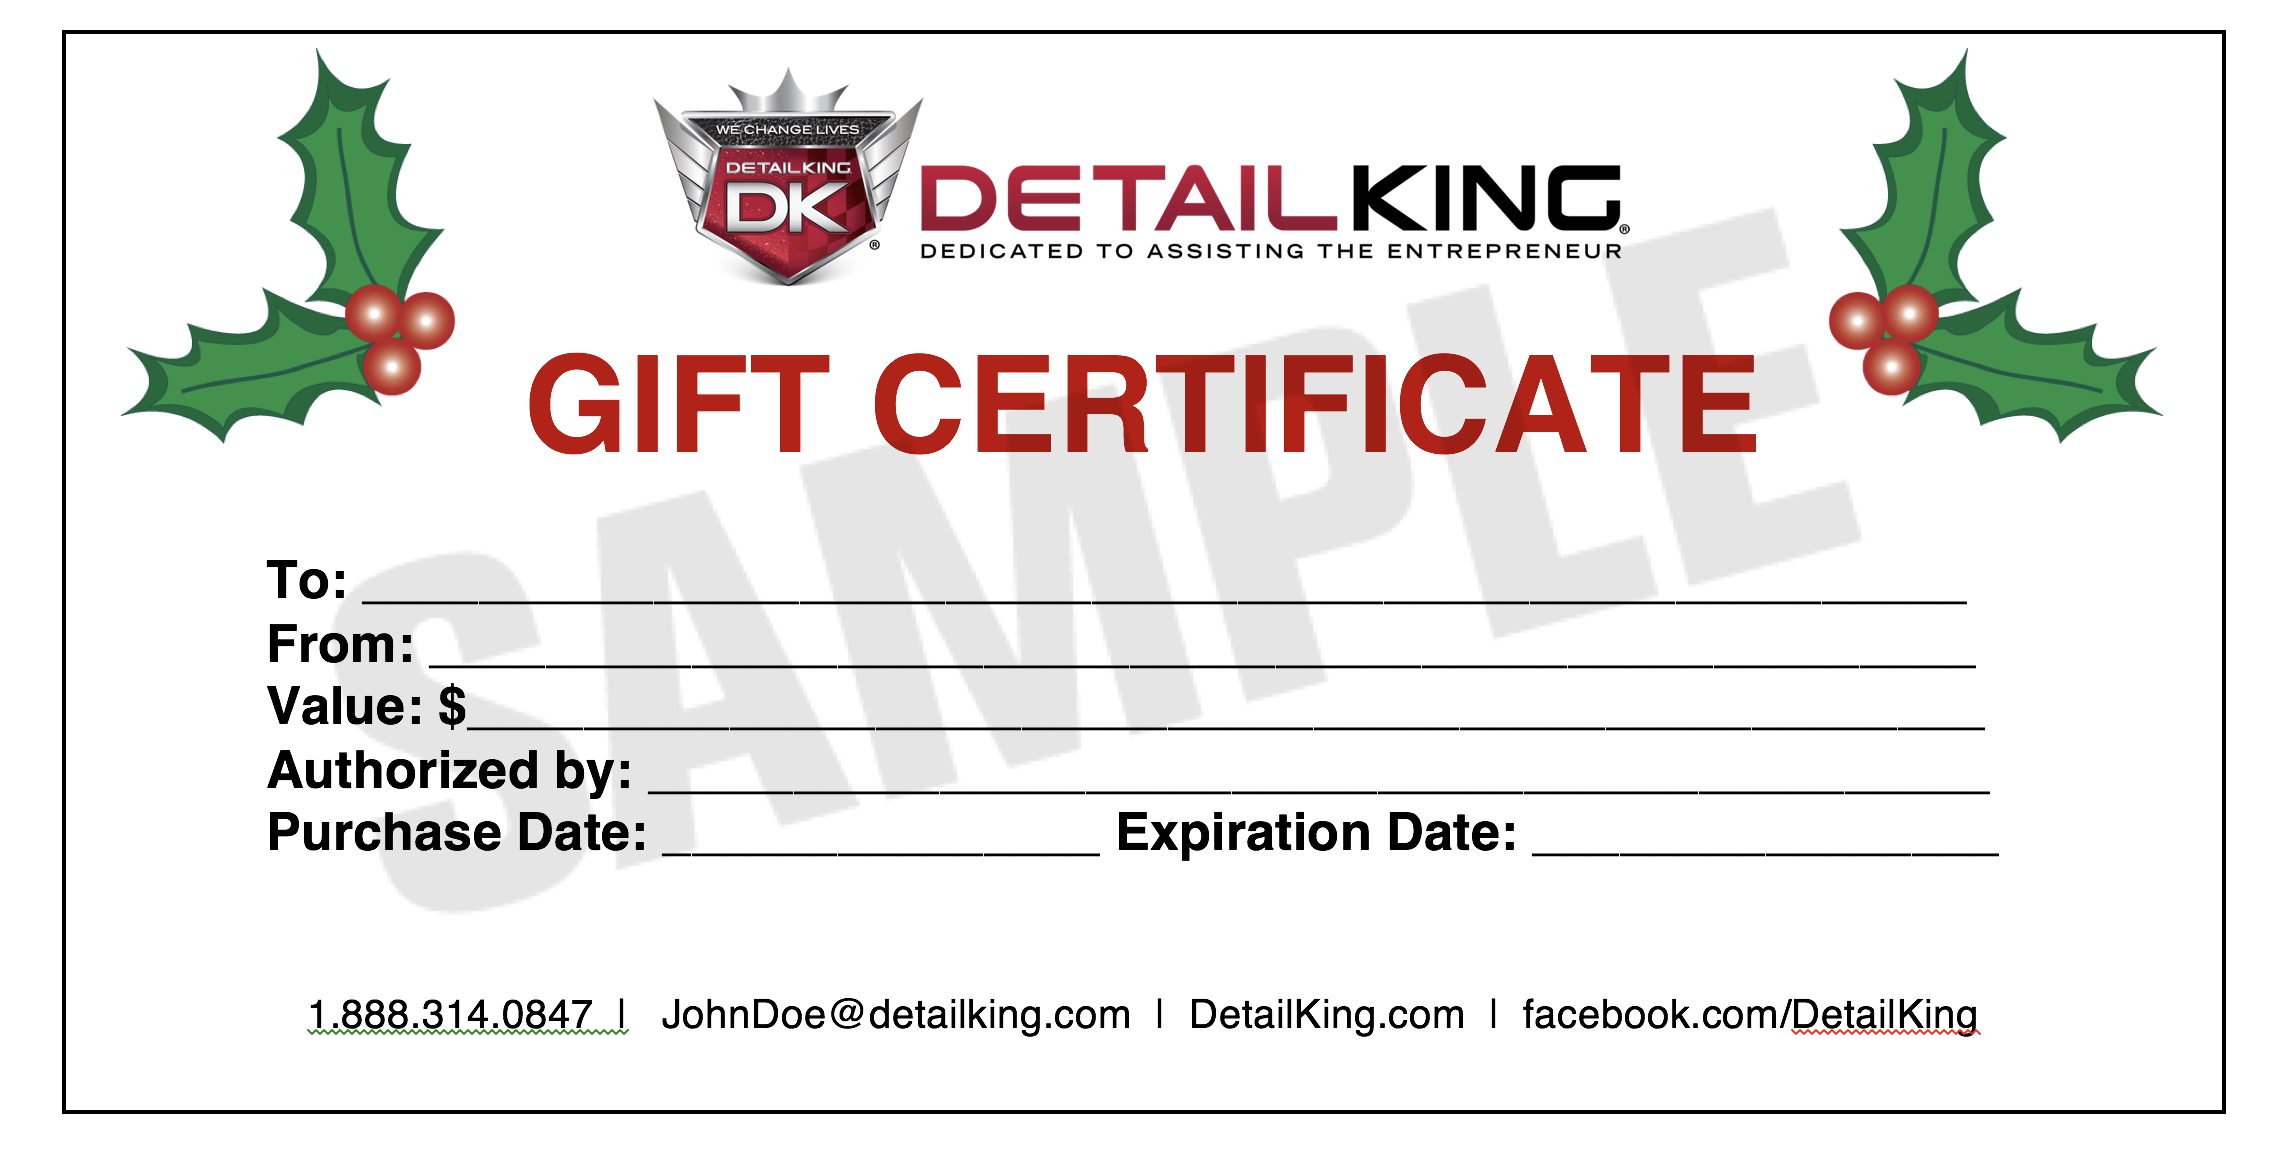 dk_sample_xmas_gift_certificicate offering gift certificate